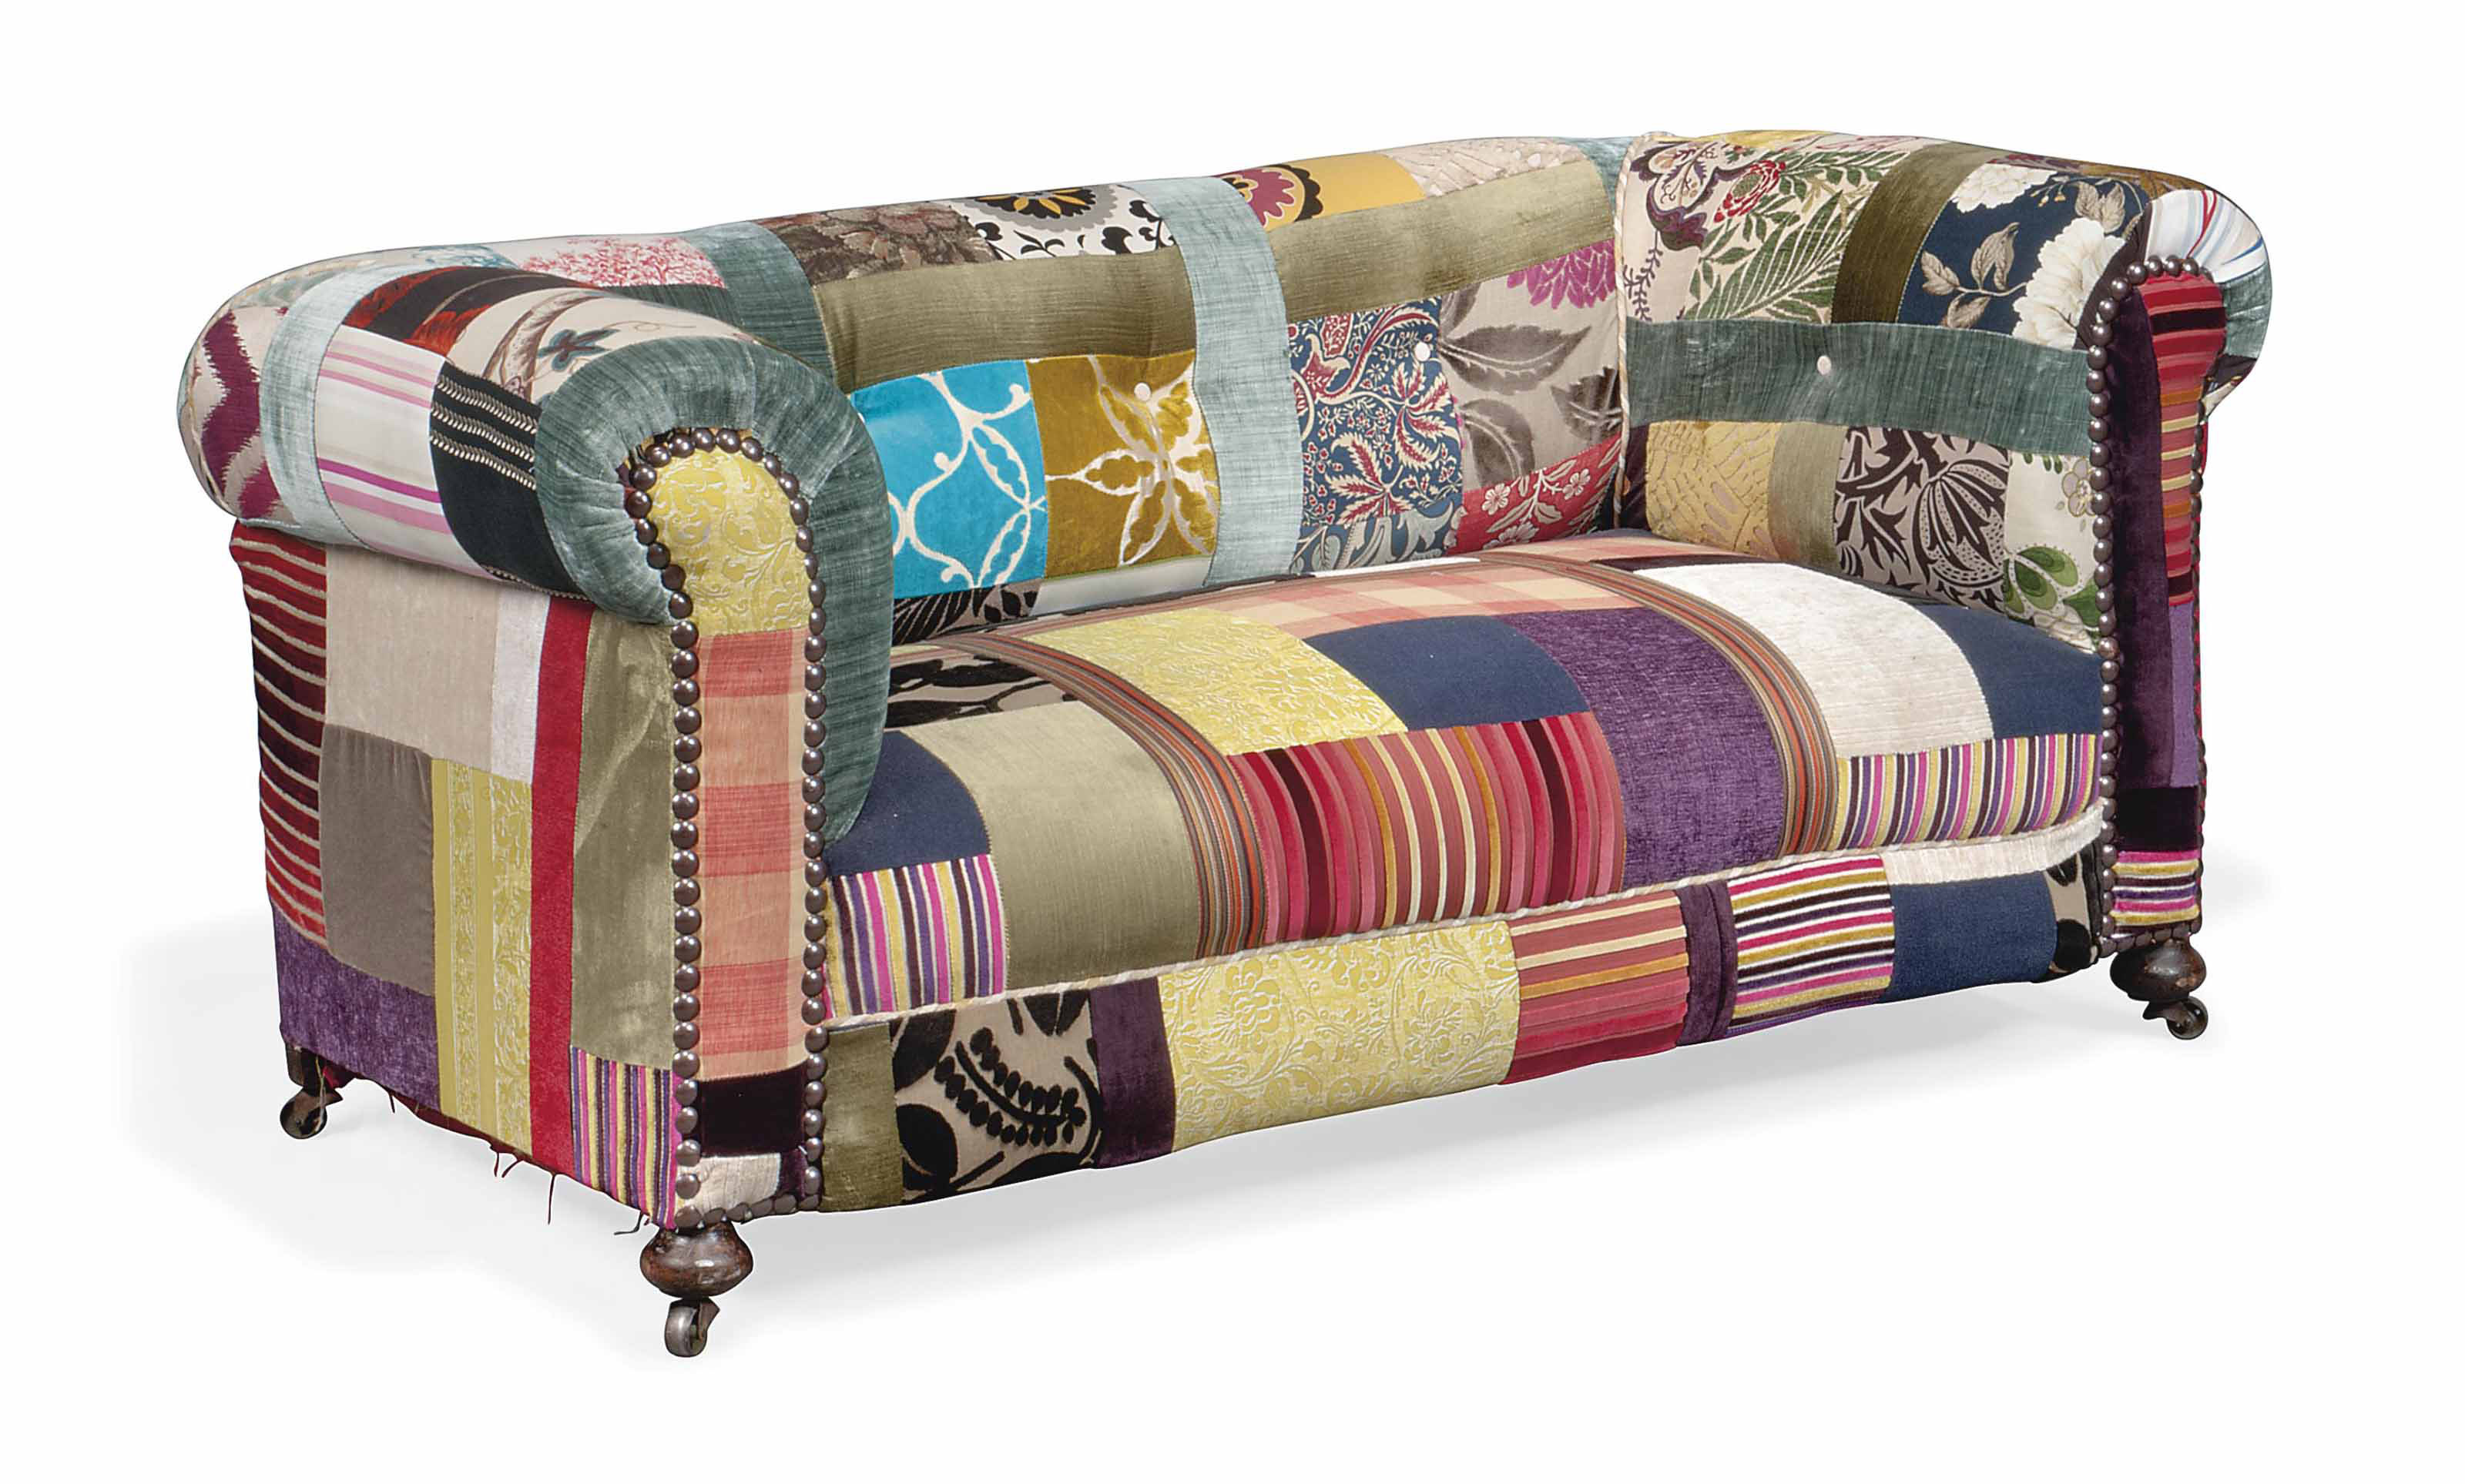 A SMALL CHESTERFIELD SOFA